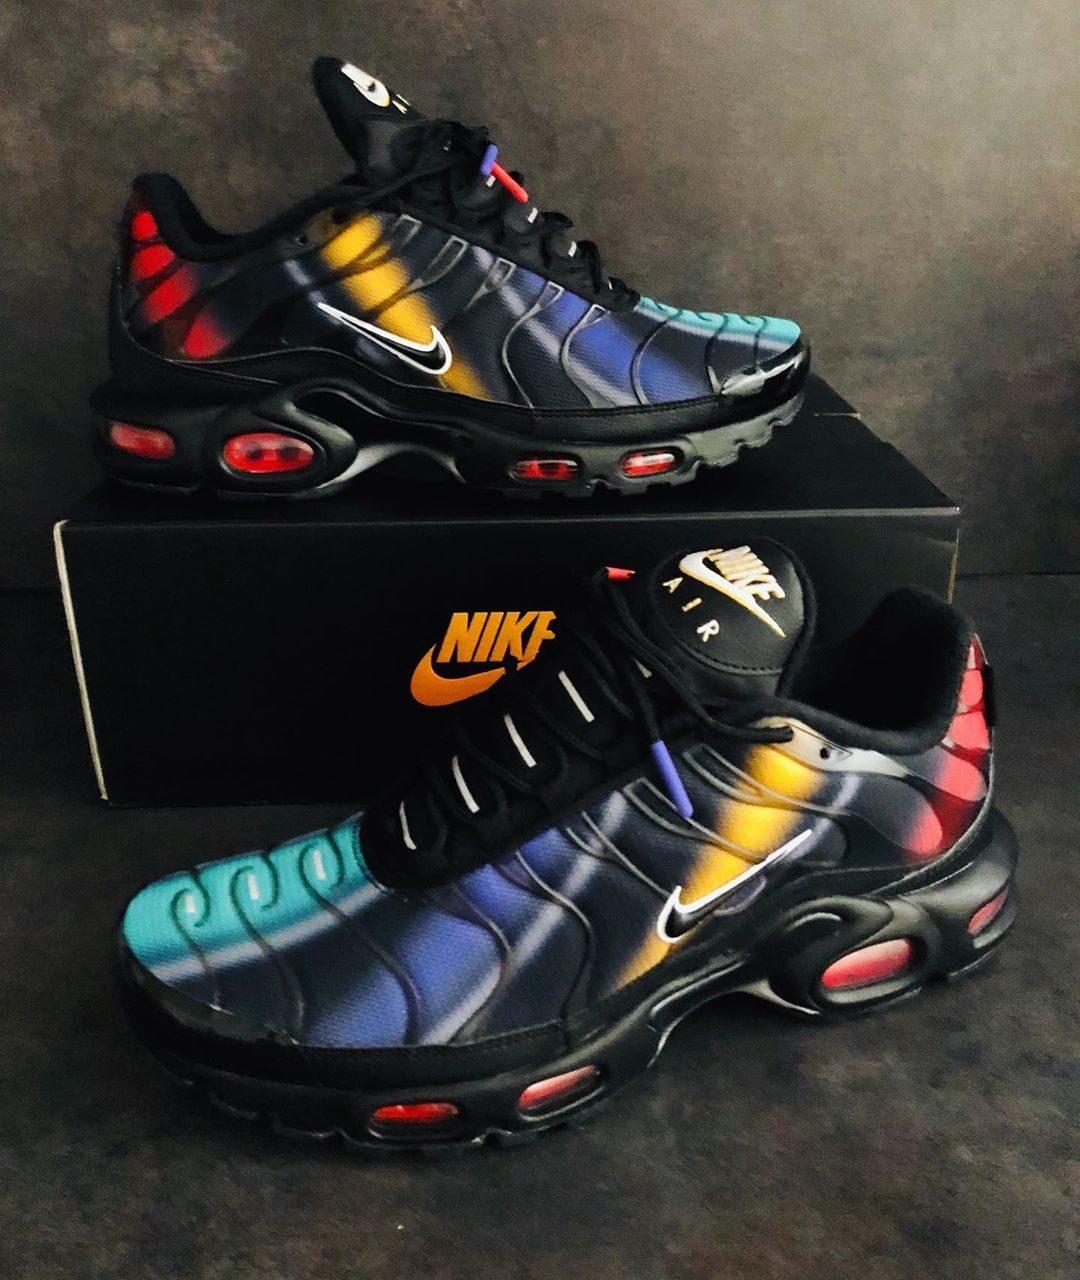 new high save up to 80% no sale tax Air max plus Rainbow 2019 thanks #nike ...